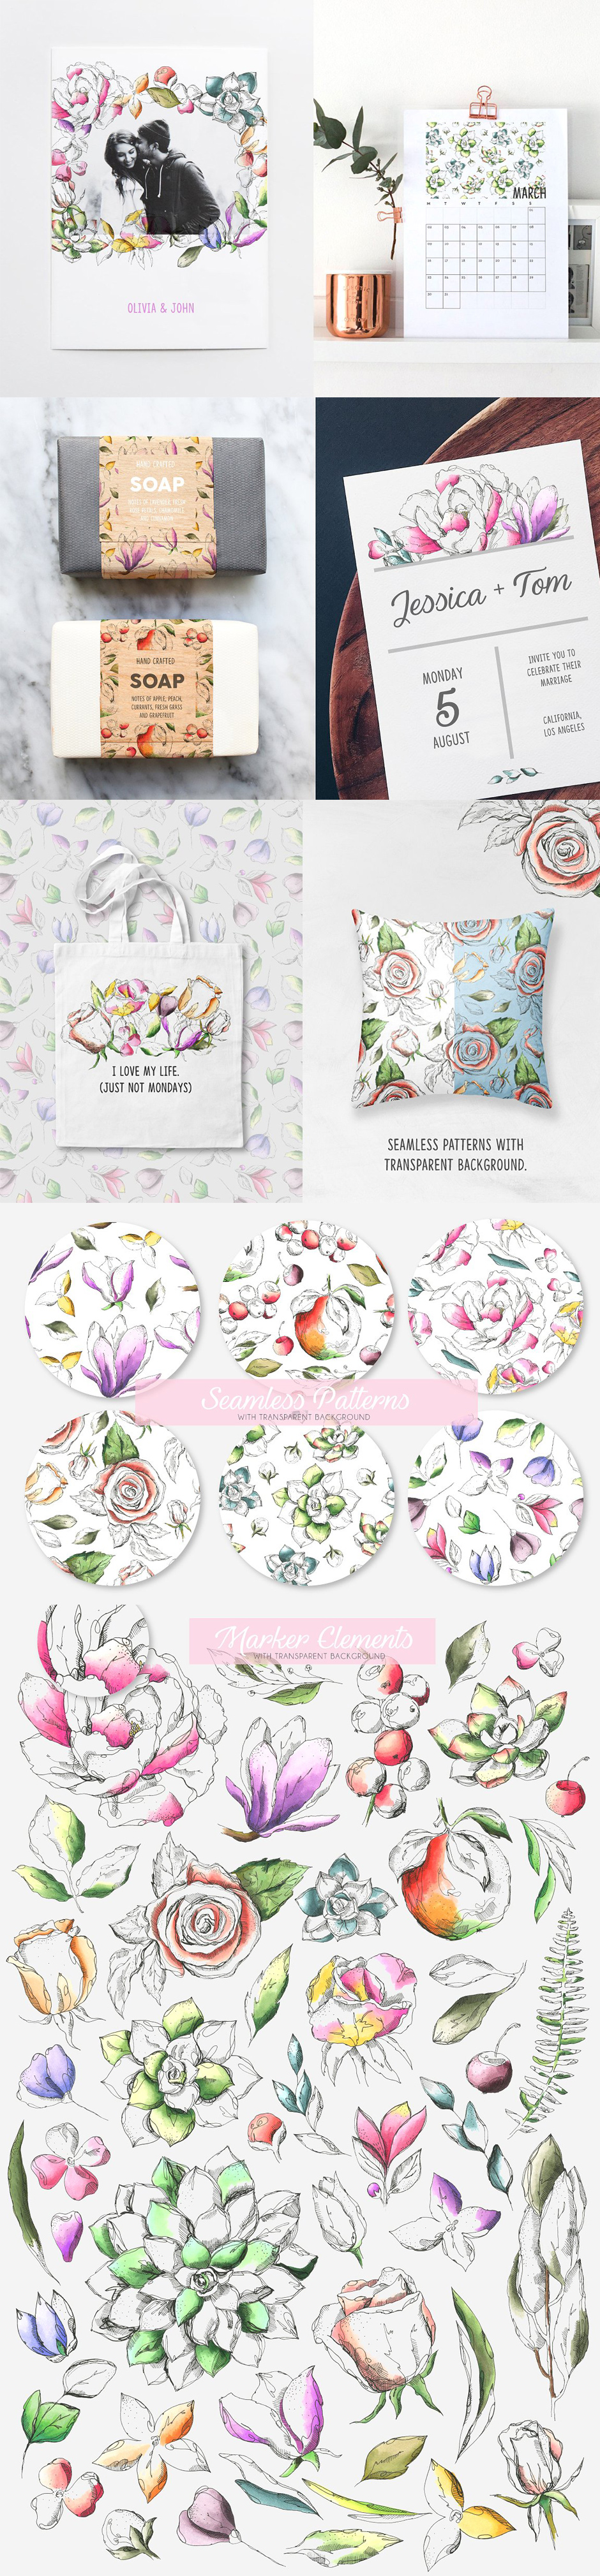 flower images and floral patterns